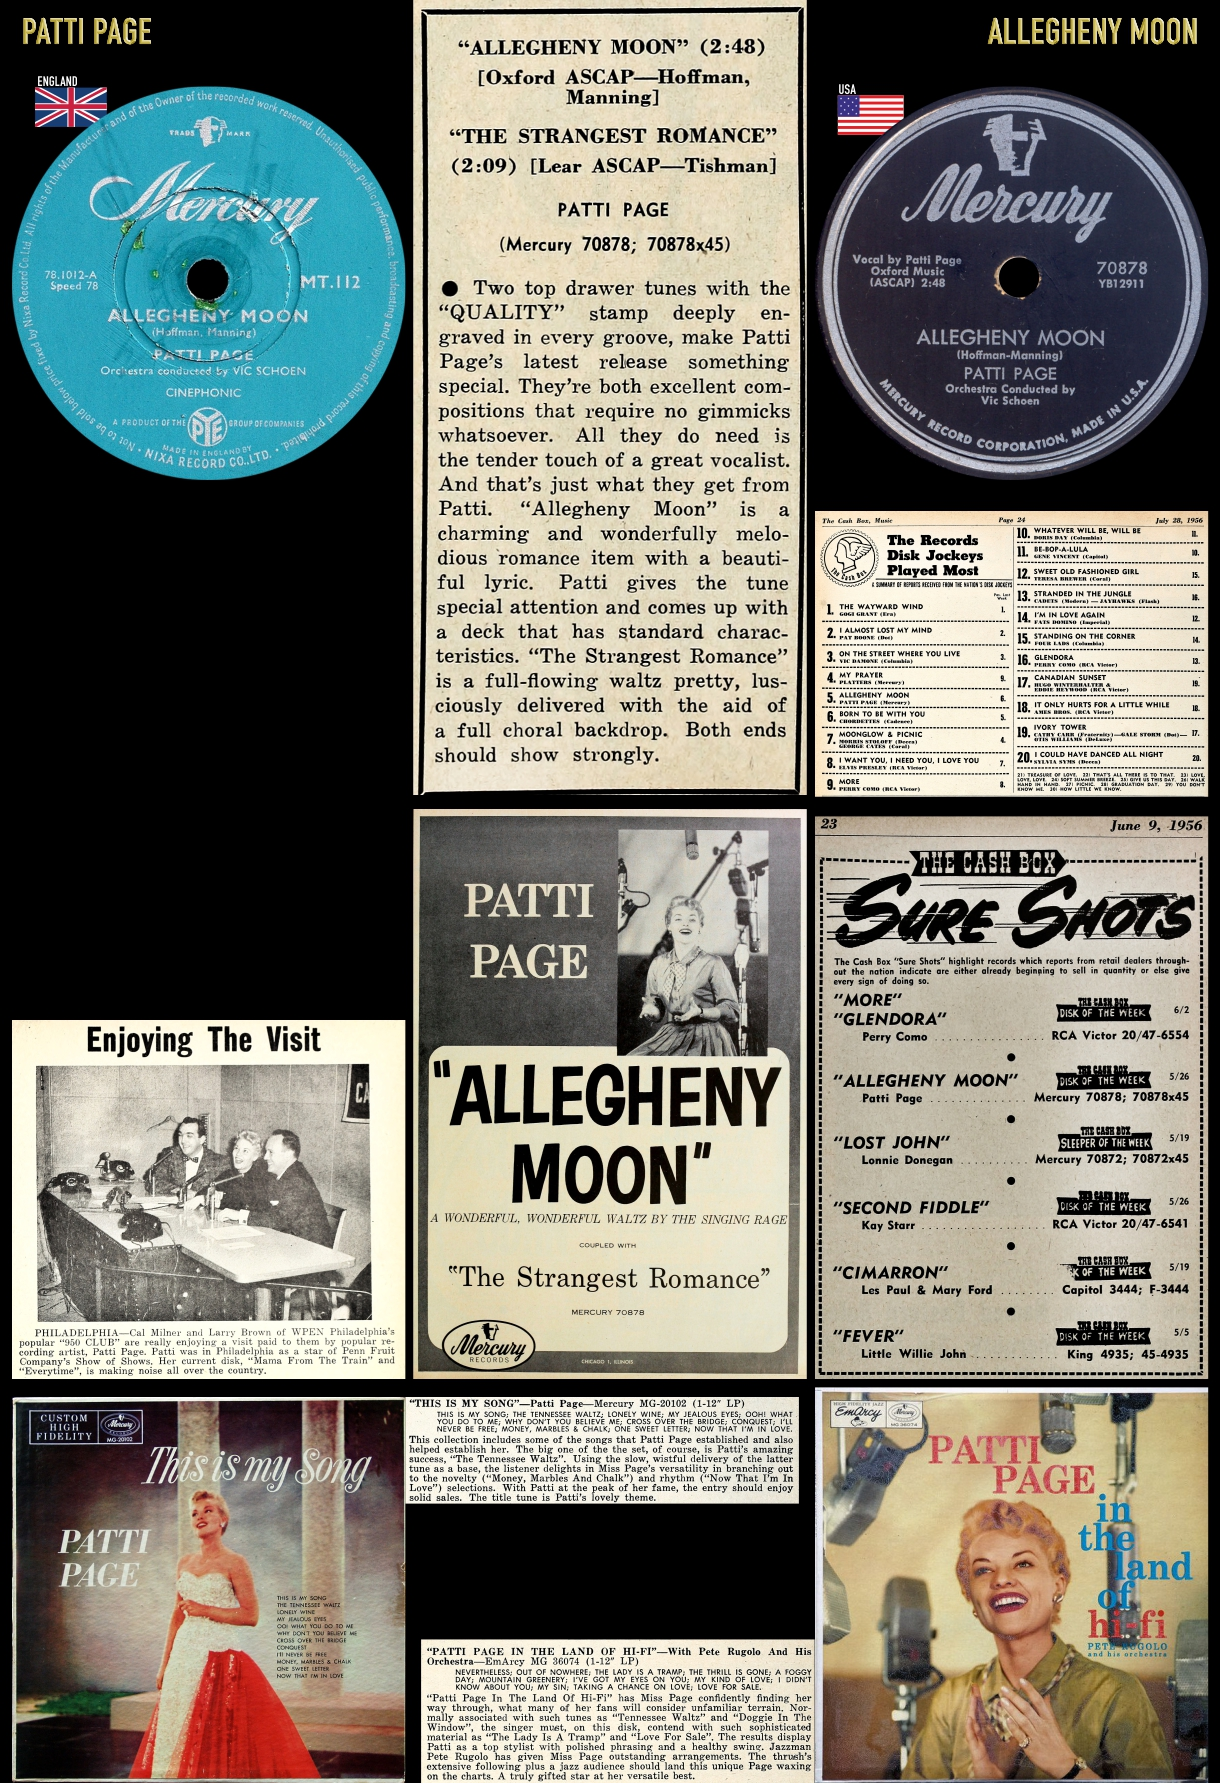 560616_Patti Page_Allegheny Moon